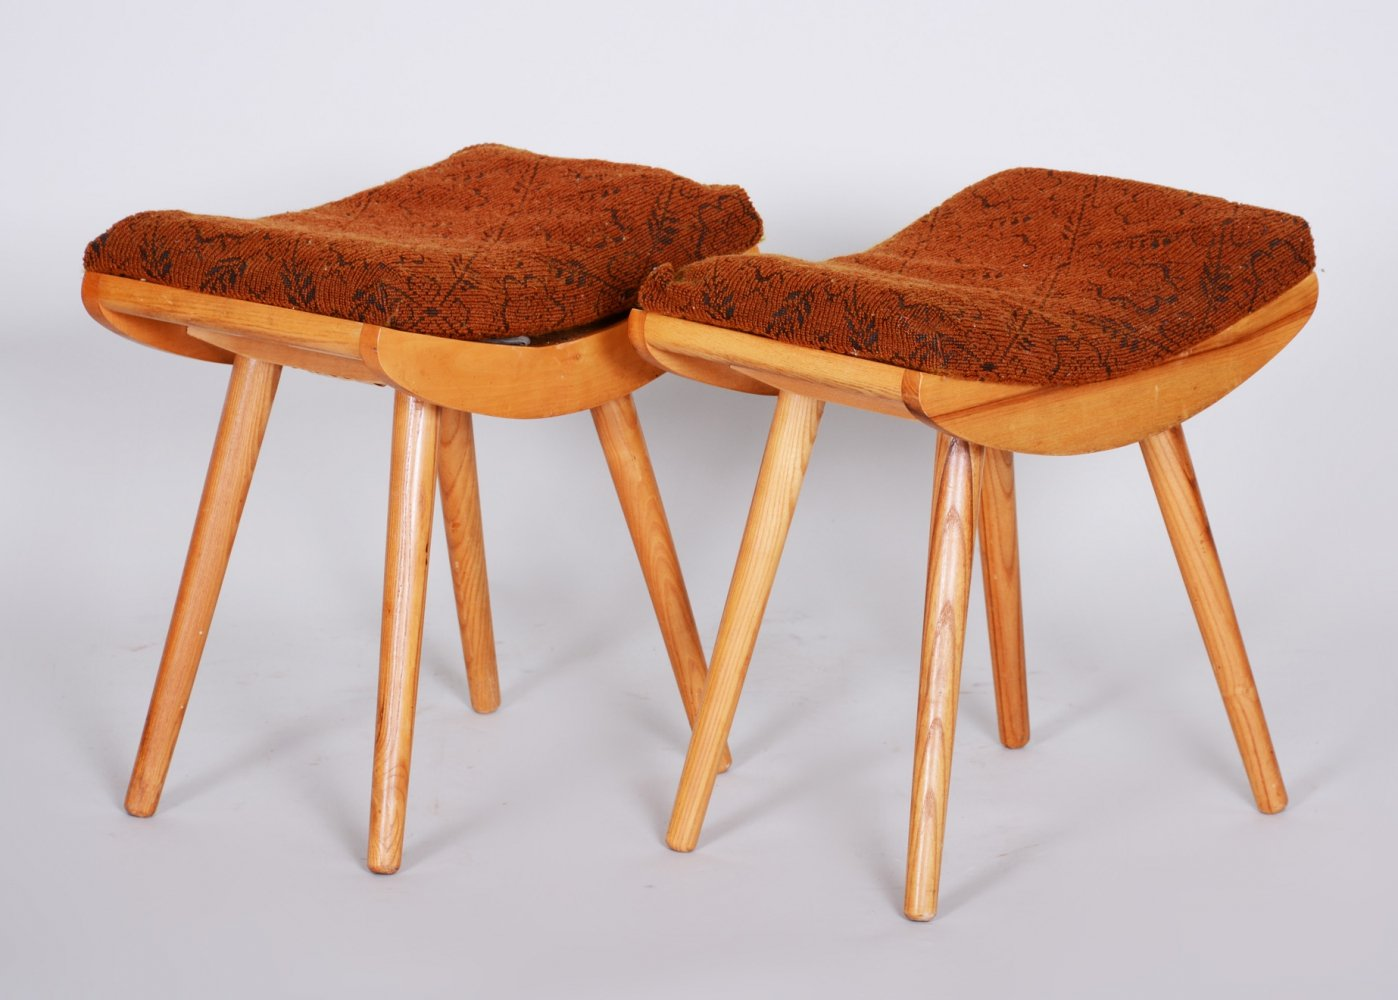 Pair of Midcentury Red Ash Stools, 1960s